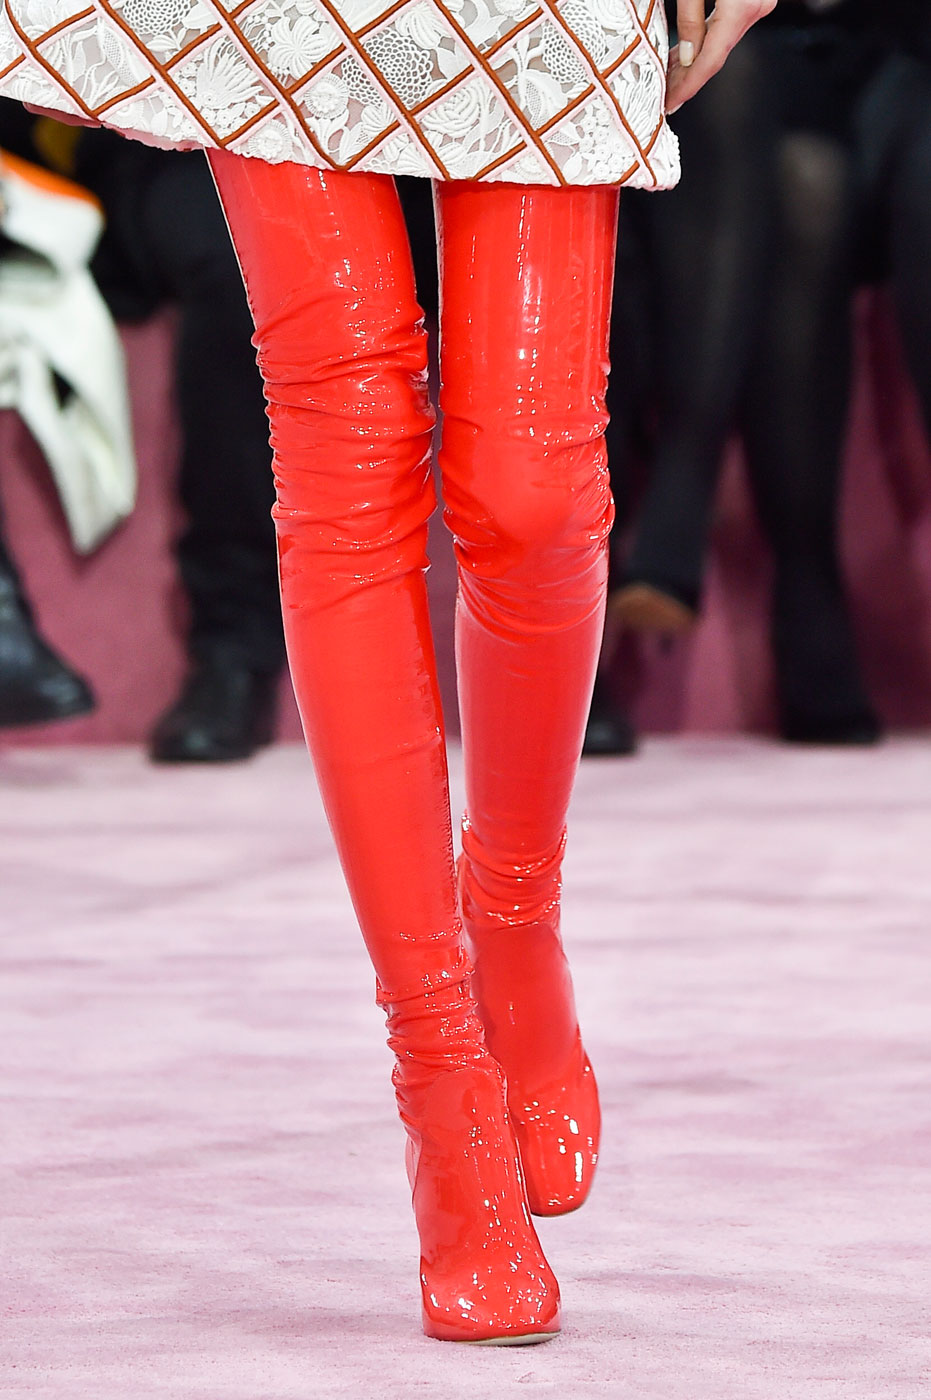 Christian-Dior-fashion-runway-show-close-ups-haute-couture-paris-spring-summer-2015-the-impression-088